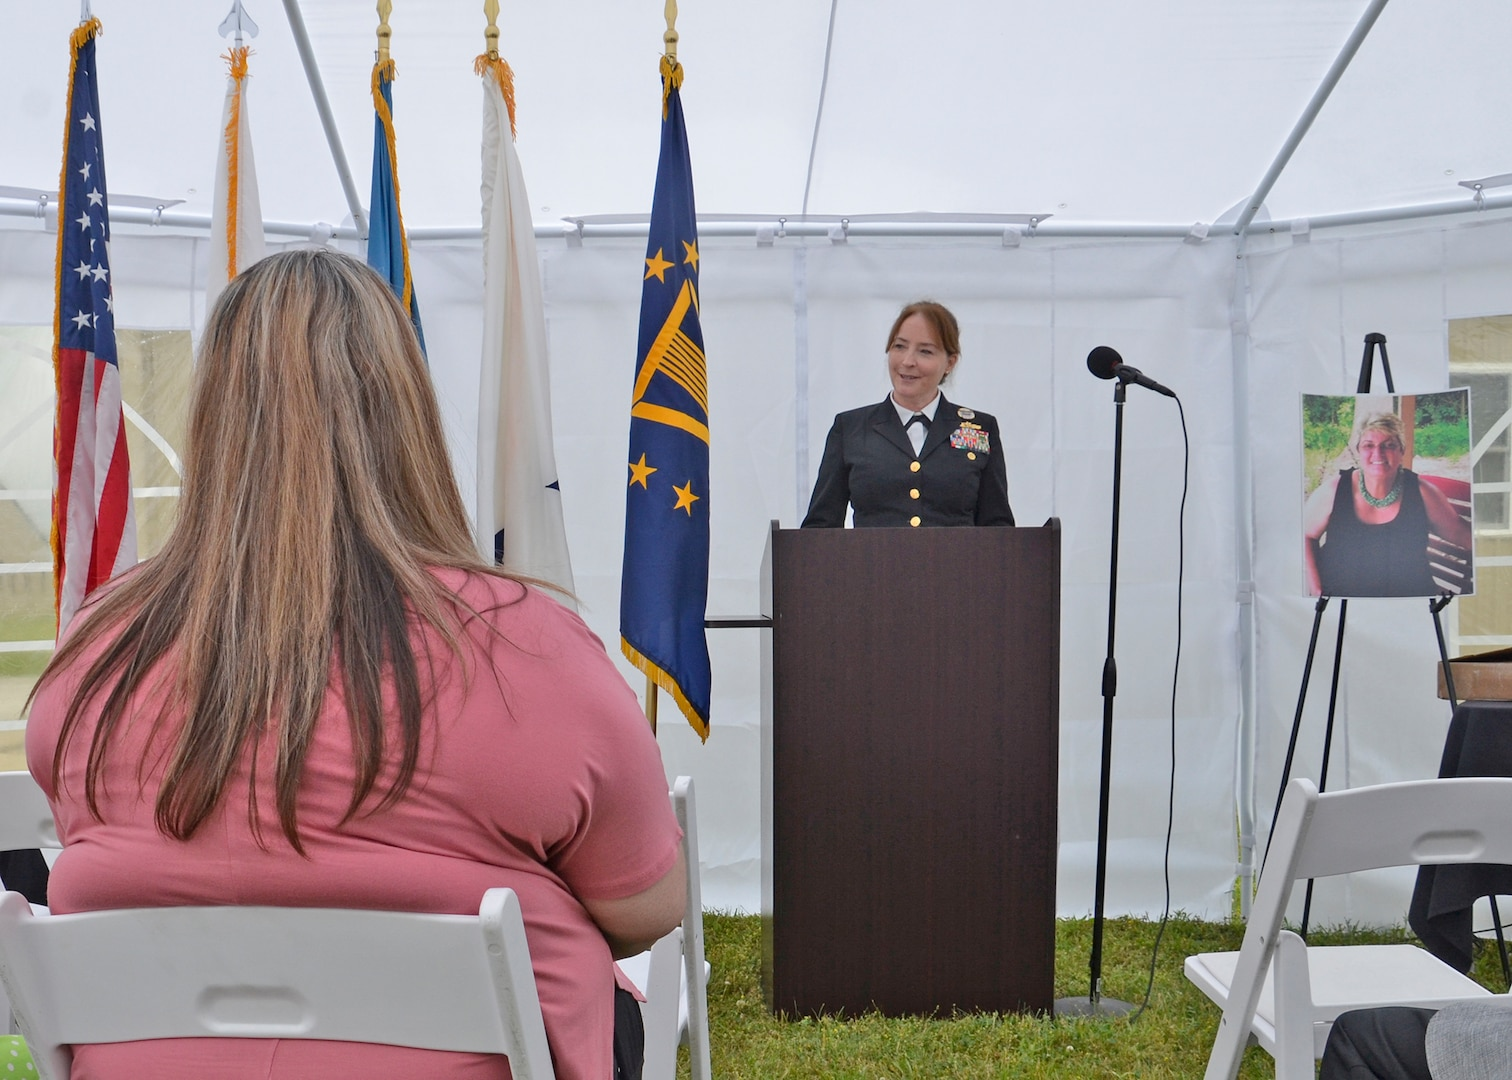 A Navy admiral speaks to listeners inside of a white tent.